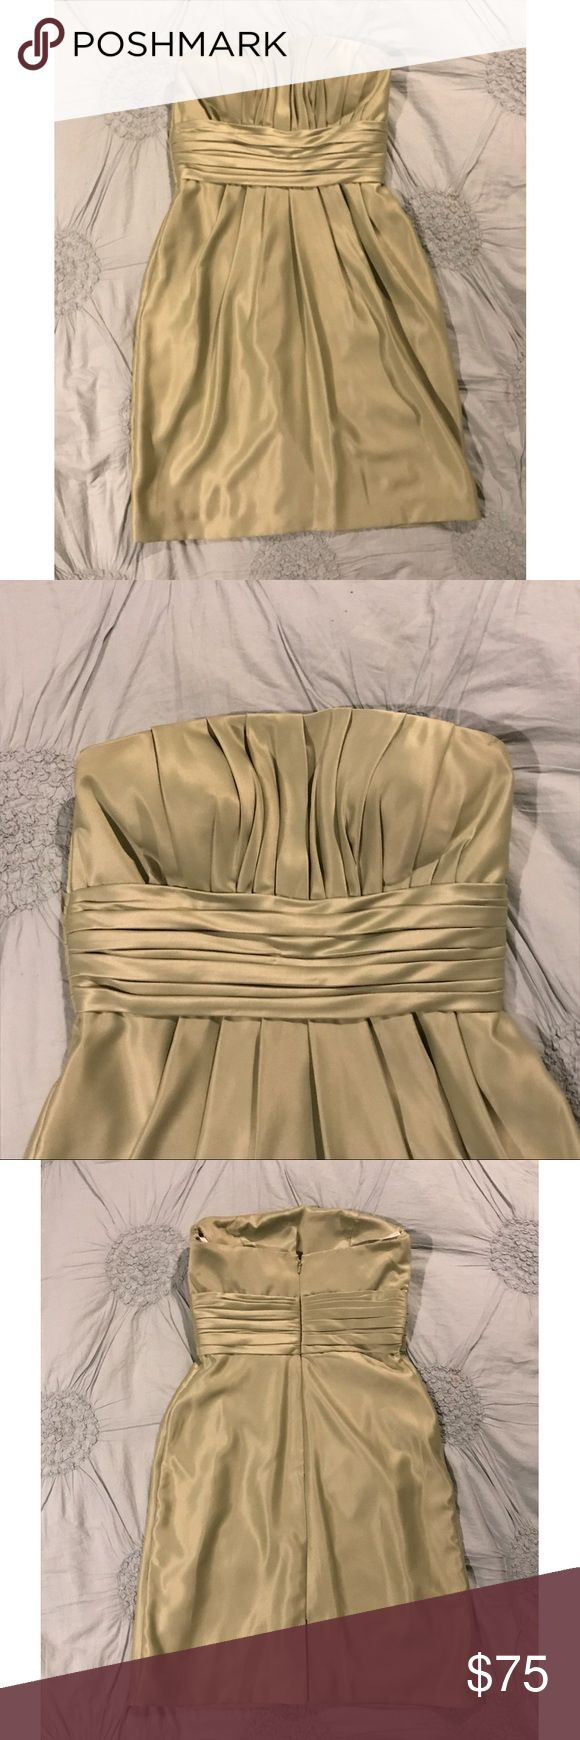 Pistachio Strapless Formal Dress ✨WORN ONCE, PERFECT CONDITION ✨Material: 100% rayon (outside) and 100% polyester (inside) ✨So so comfortable! ✨Strapless ✨Length is mid/lower thigh depending on how tall you are! ✨Beautiful pistachio color ✨Straps for hanging at the top ✨Zips up in back Bill Levkoff Dresses Strapless